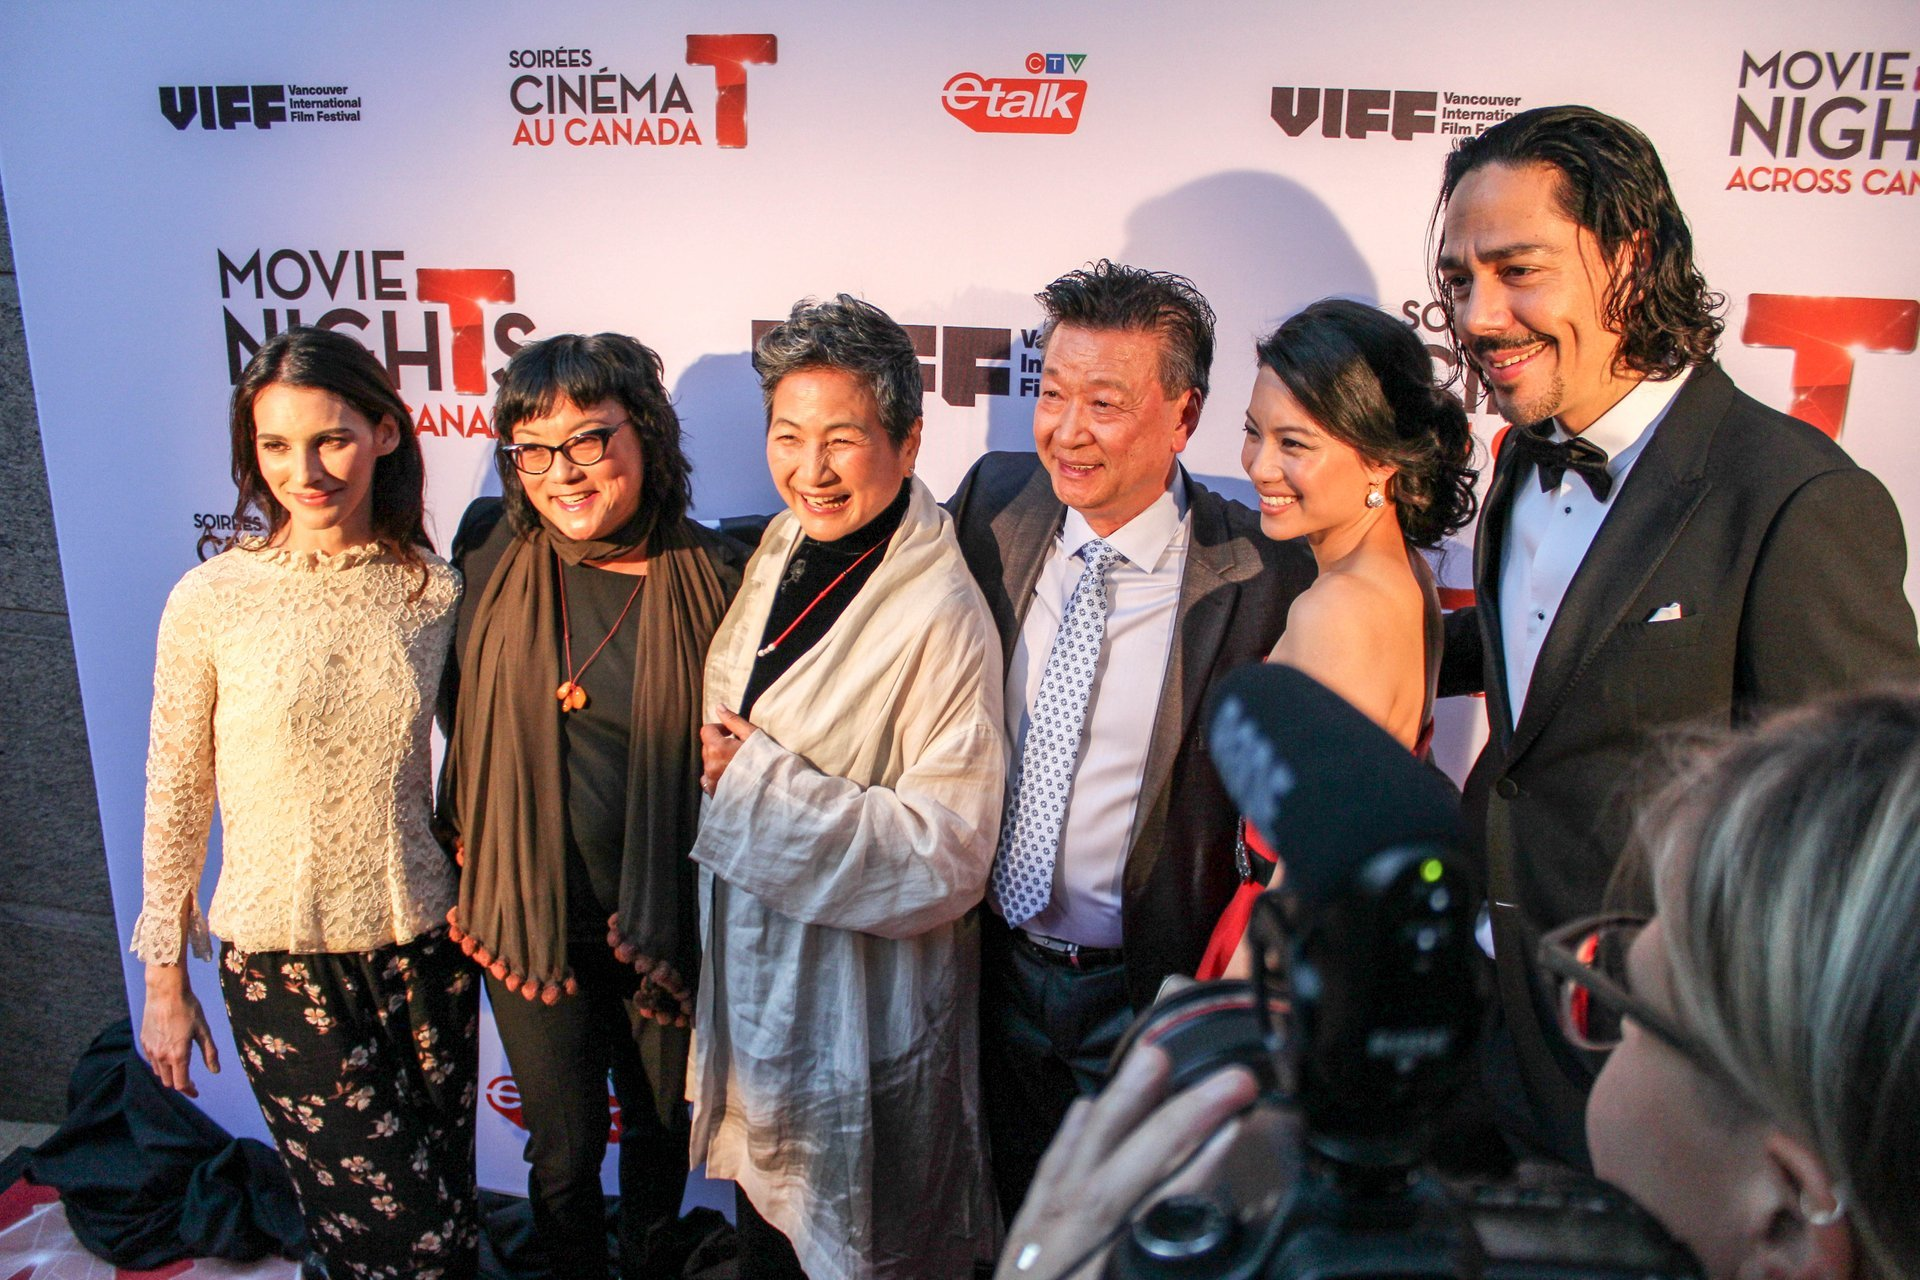 Best time to see Vancouver International Film Festival (VIFF) in Vancouver 2019